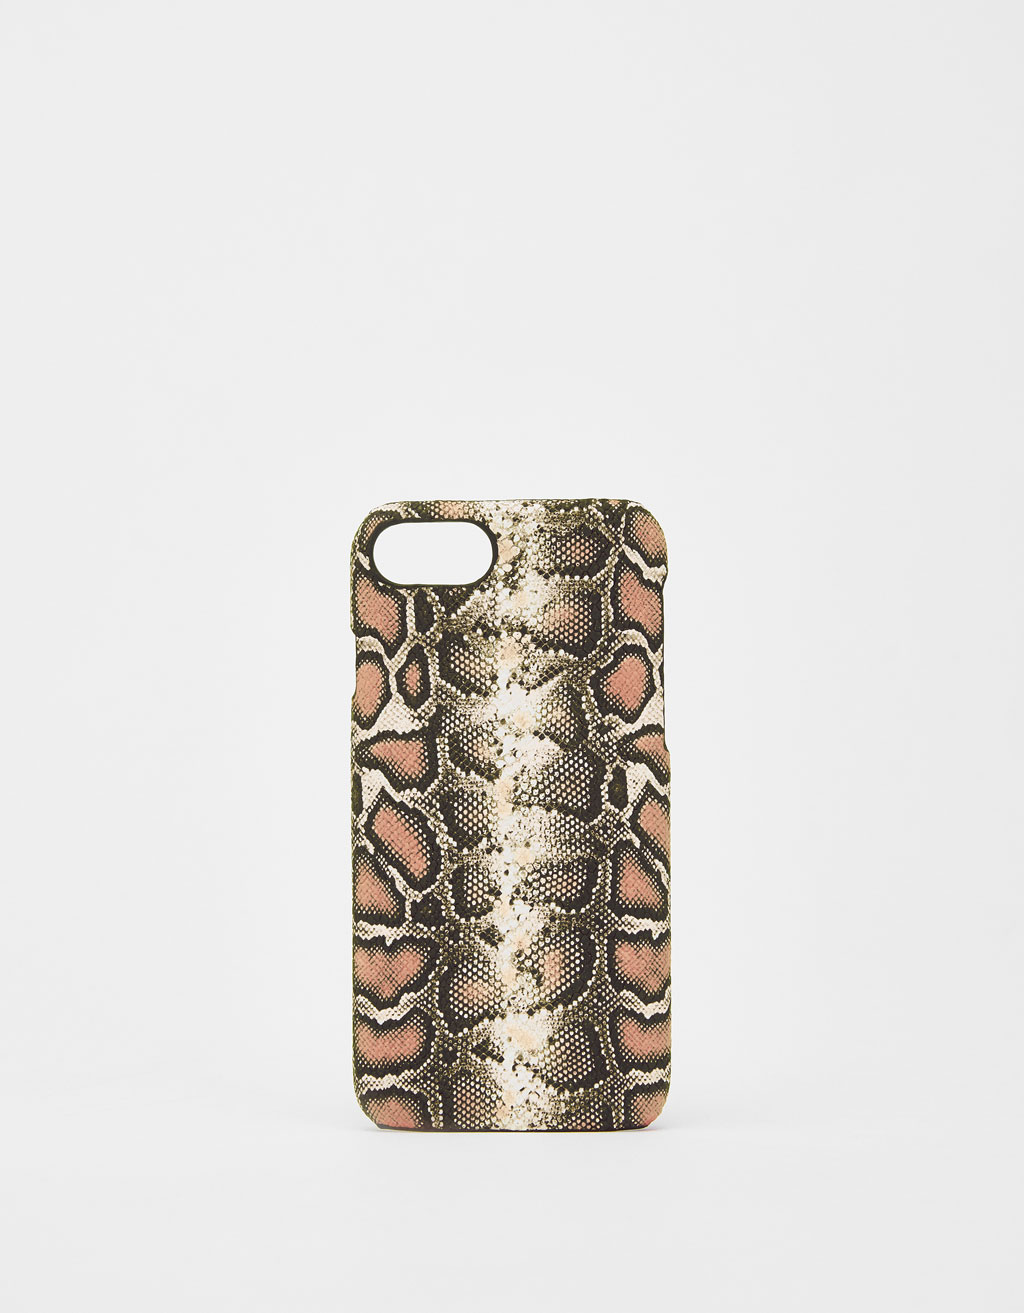 Snakeskin print iPhone 6/6s/7/8 case